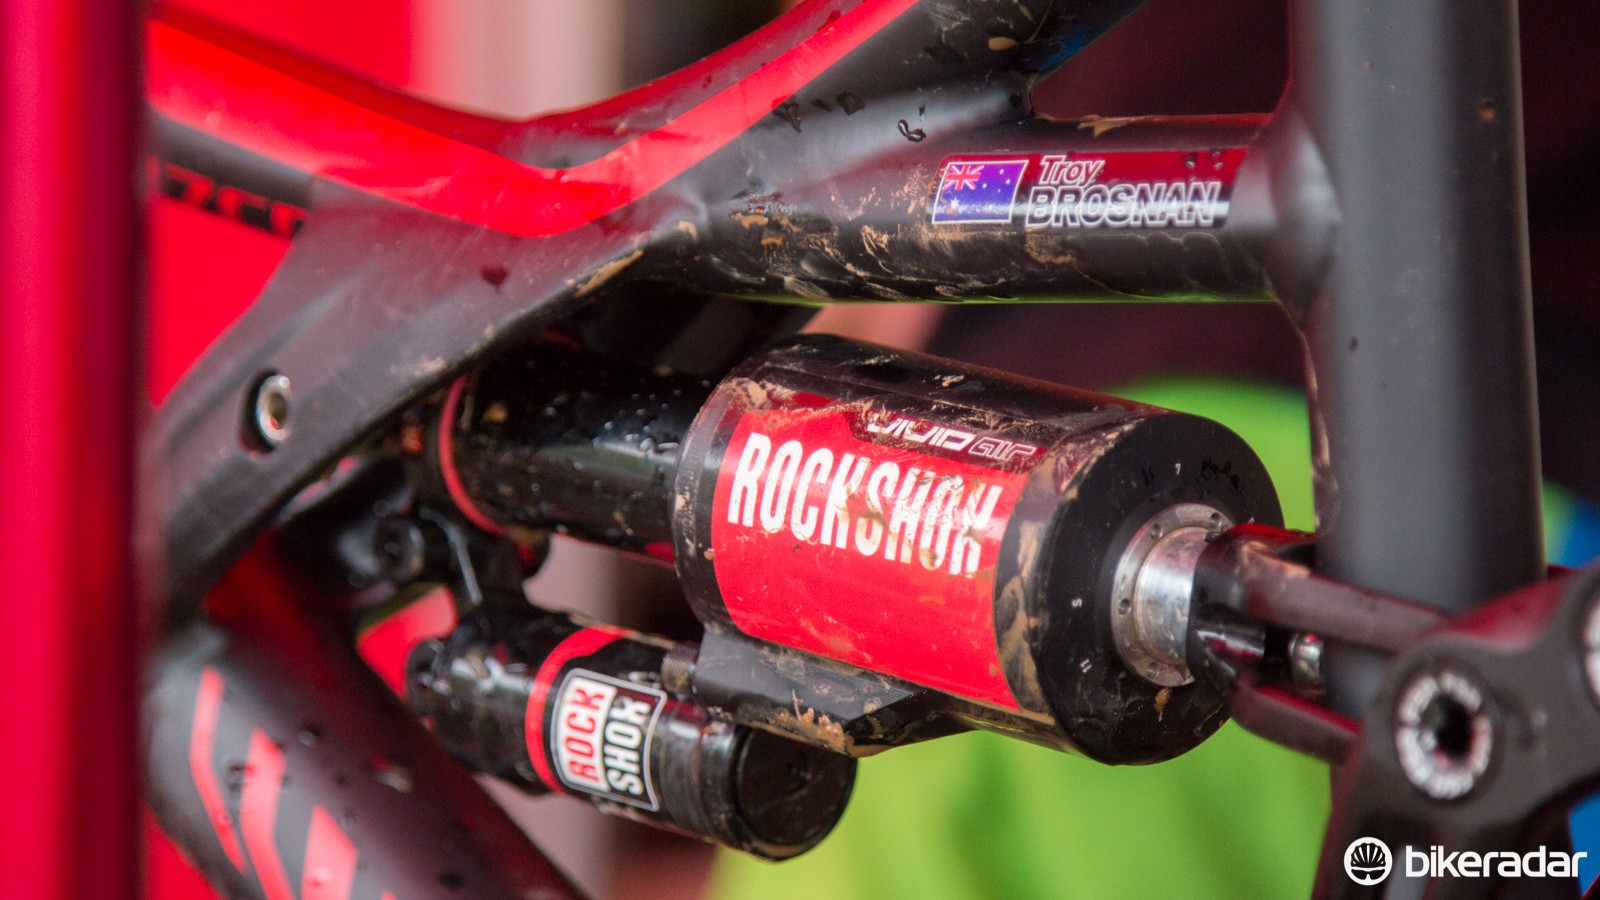 We've seen air-sprung rear shocks used in downhill before, but riders always choose coil springs for 'serious' courses